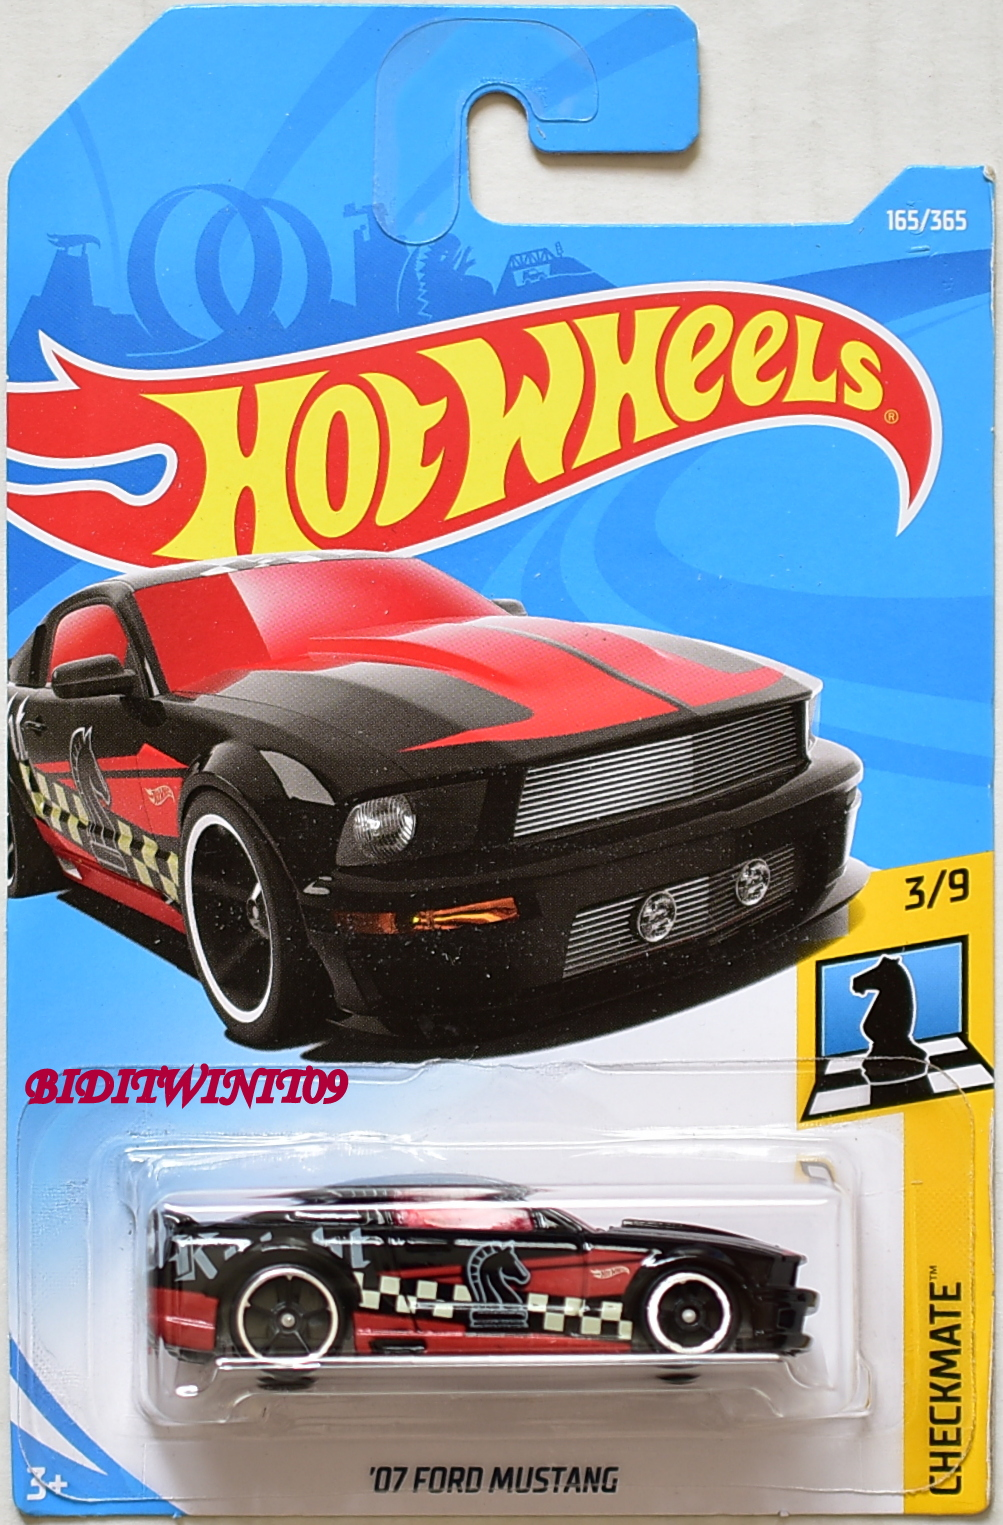 HOT WHEELS 2018 CHECKMATE '07 FORD MUSTANG #3/9 BLACK